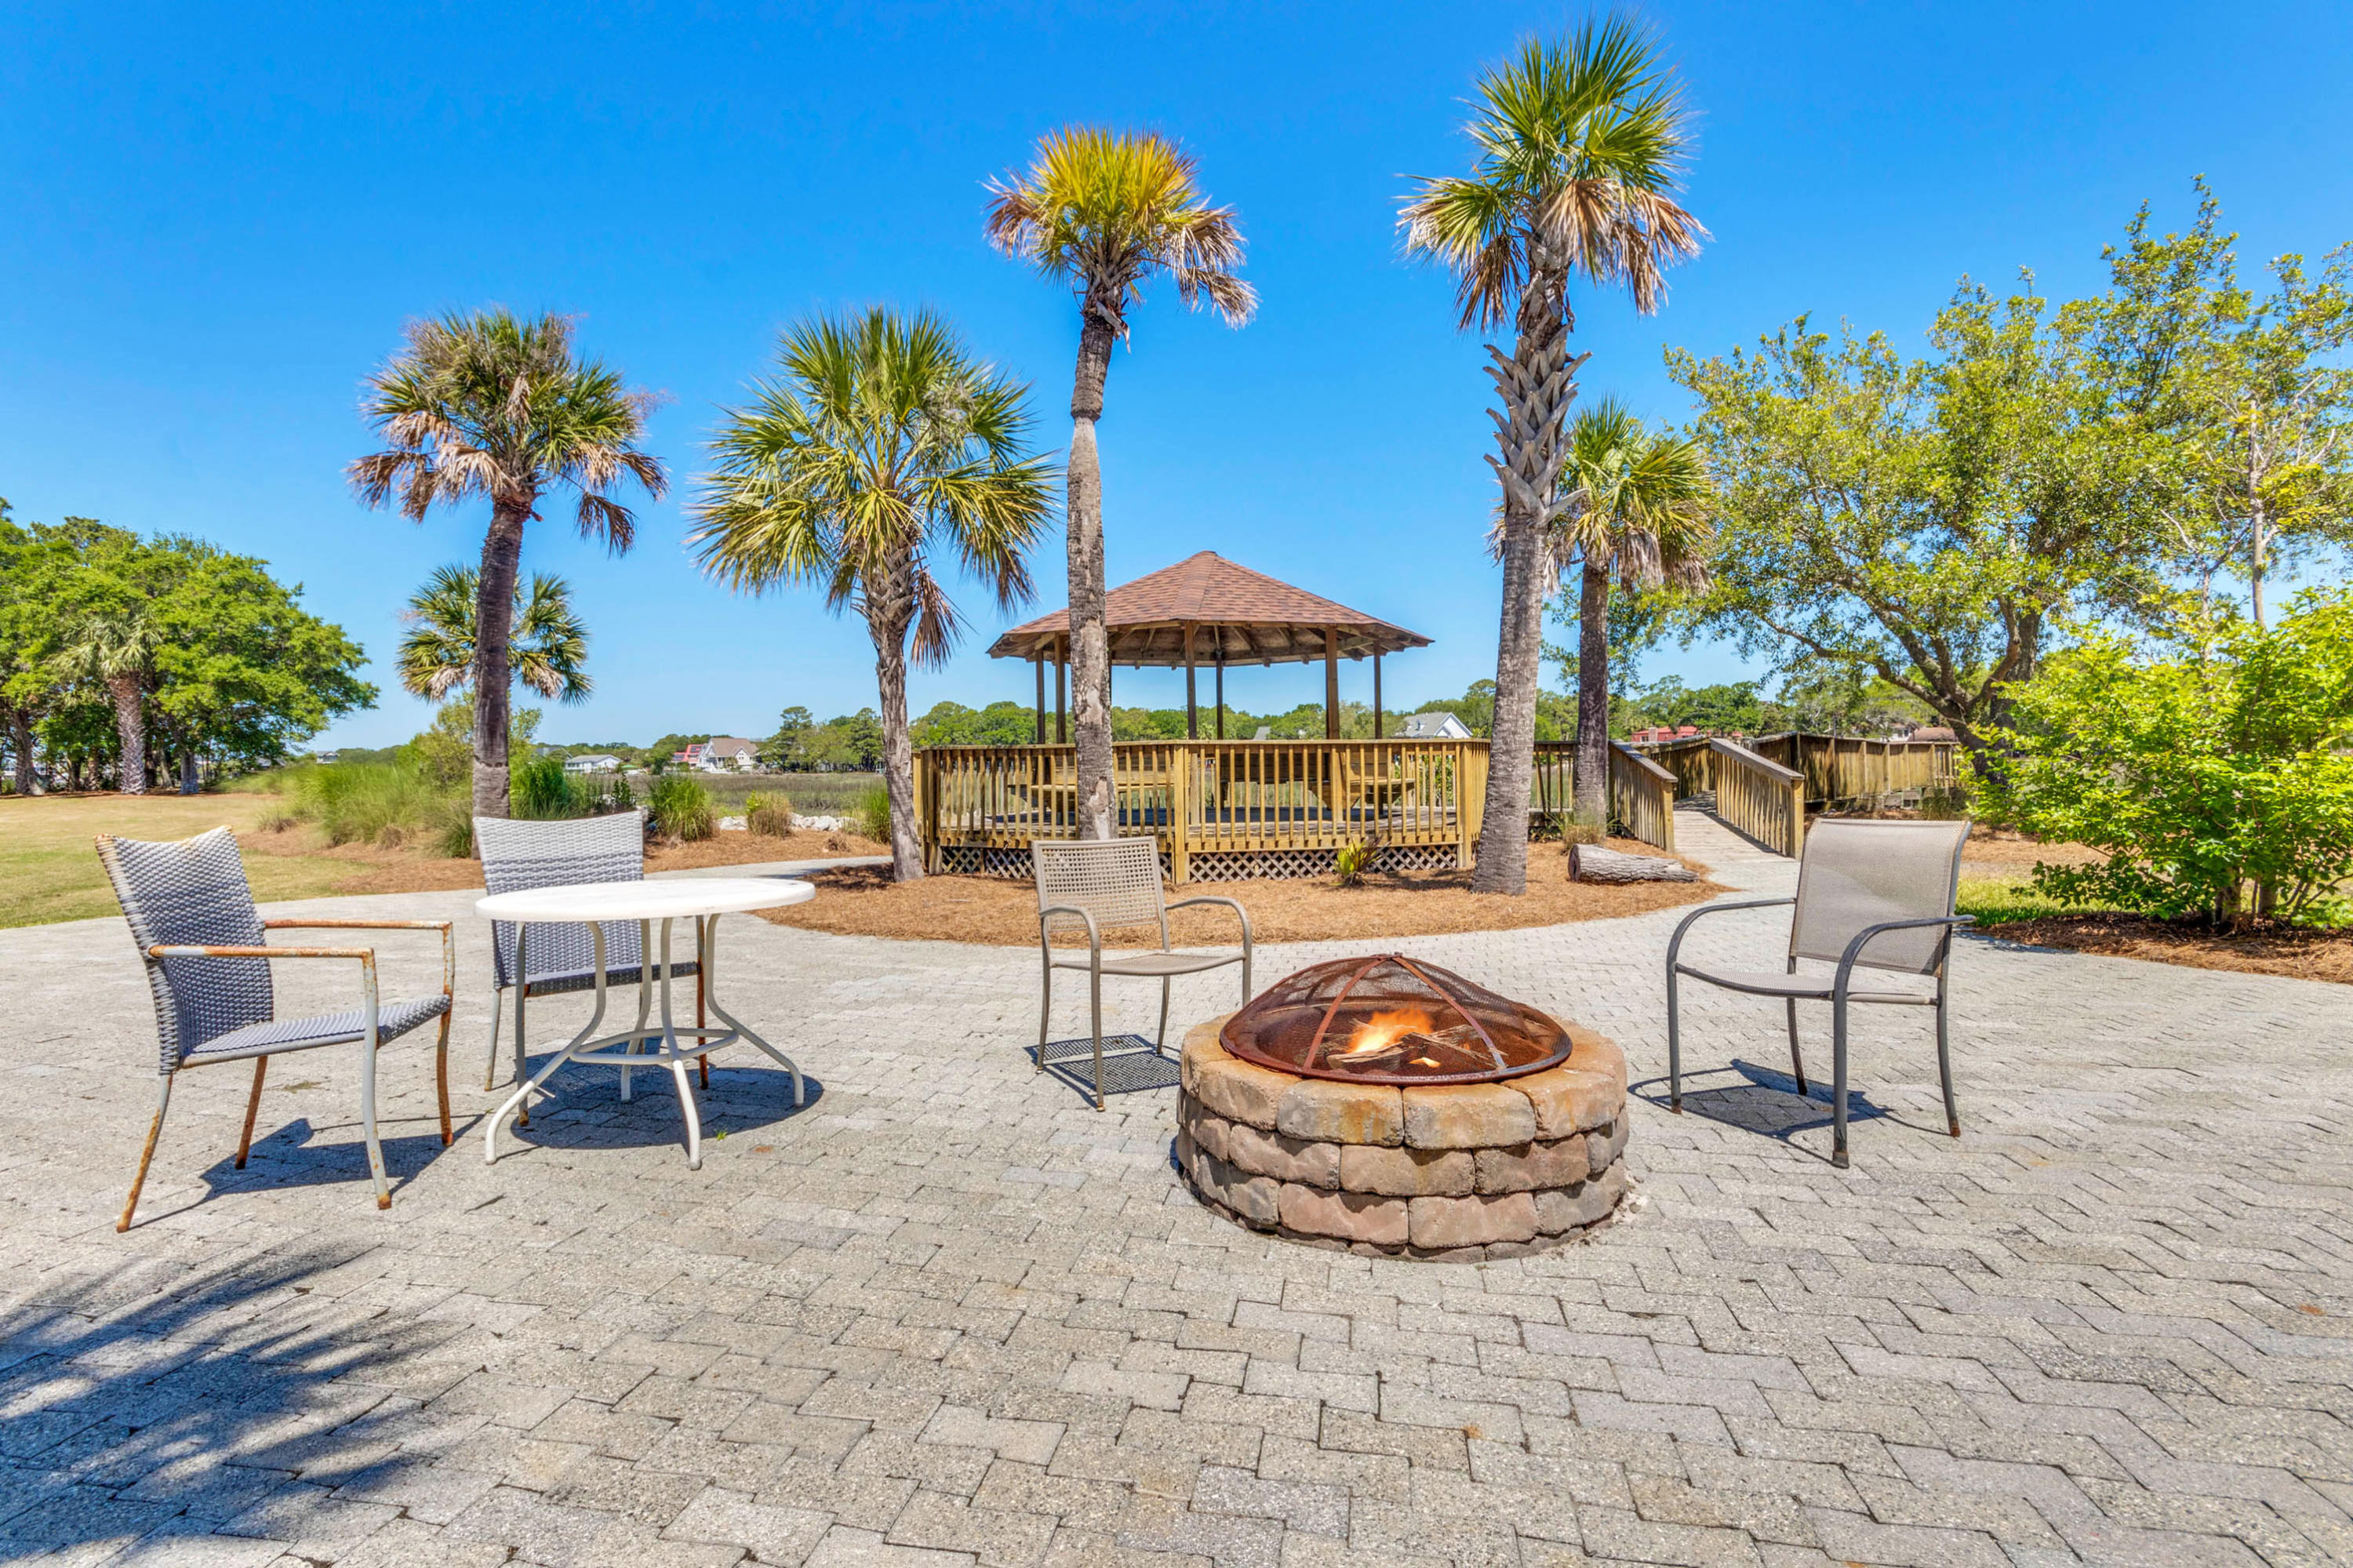 Mariners Cay Homes For Sale - 202 Mariners Cay, Folly Beach, SC - 24